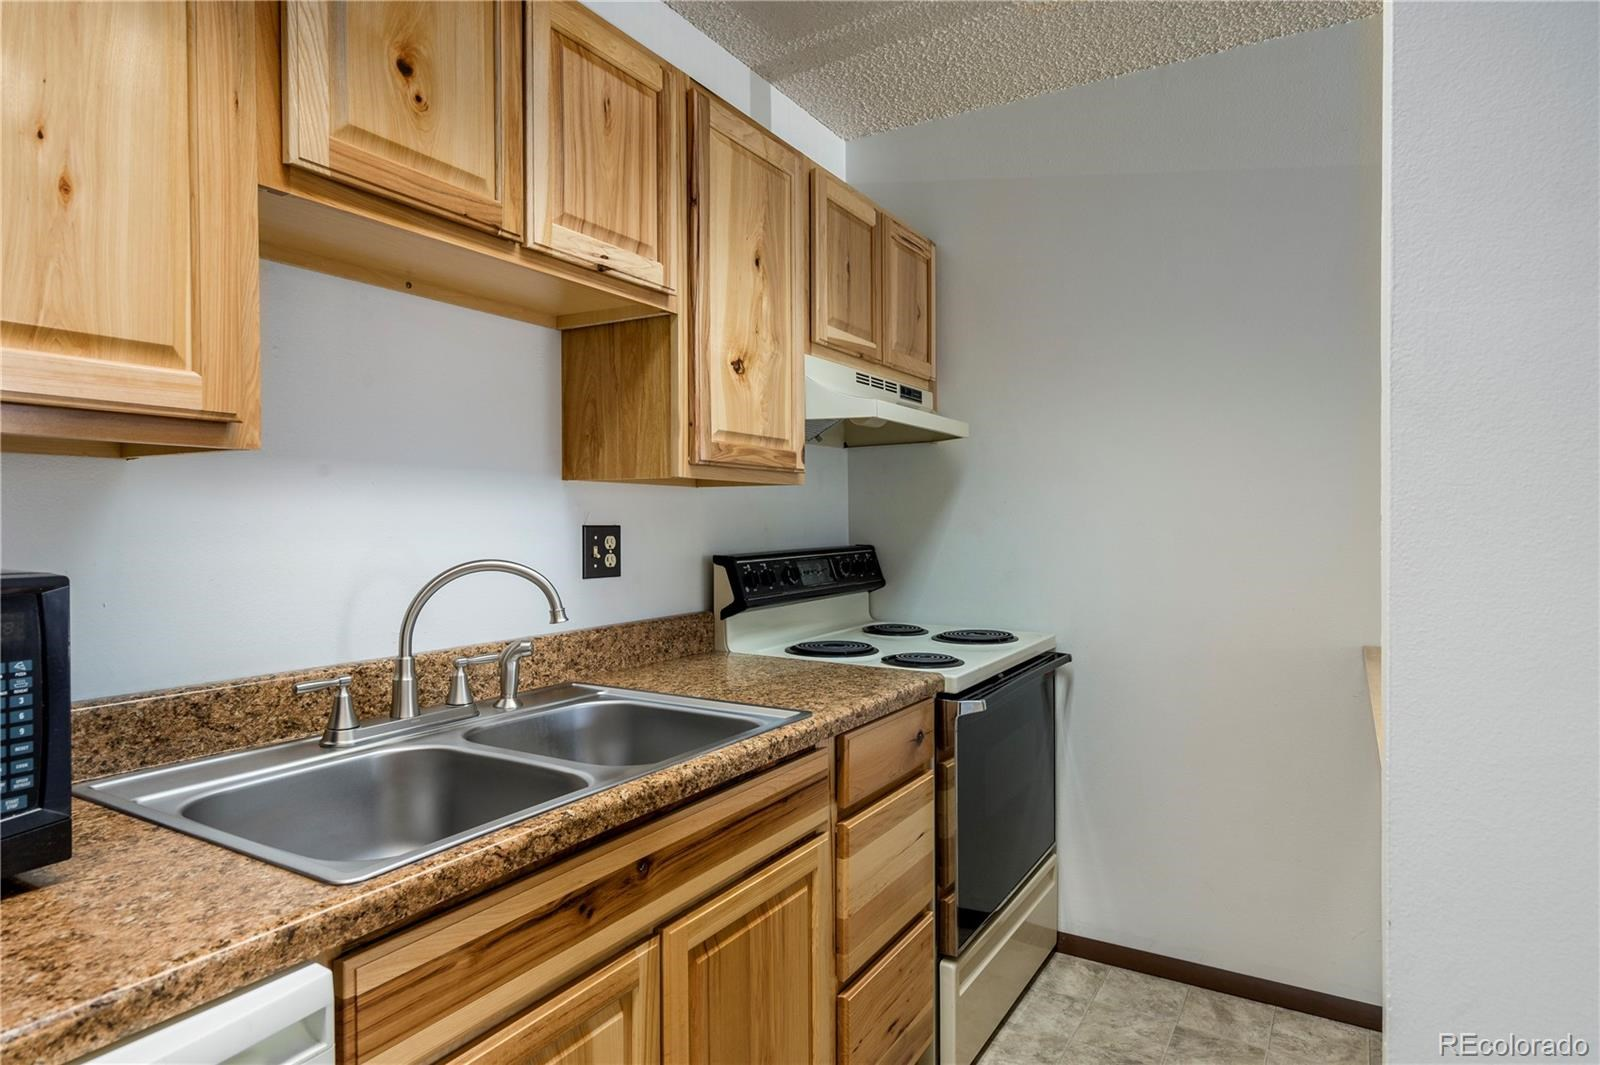 MLS# 5203269 - 2 - 1320 Athens Plaza #4, Steamboat Springs, CO 80487